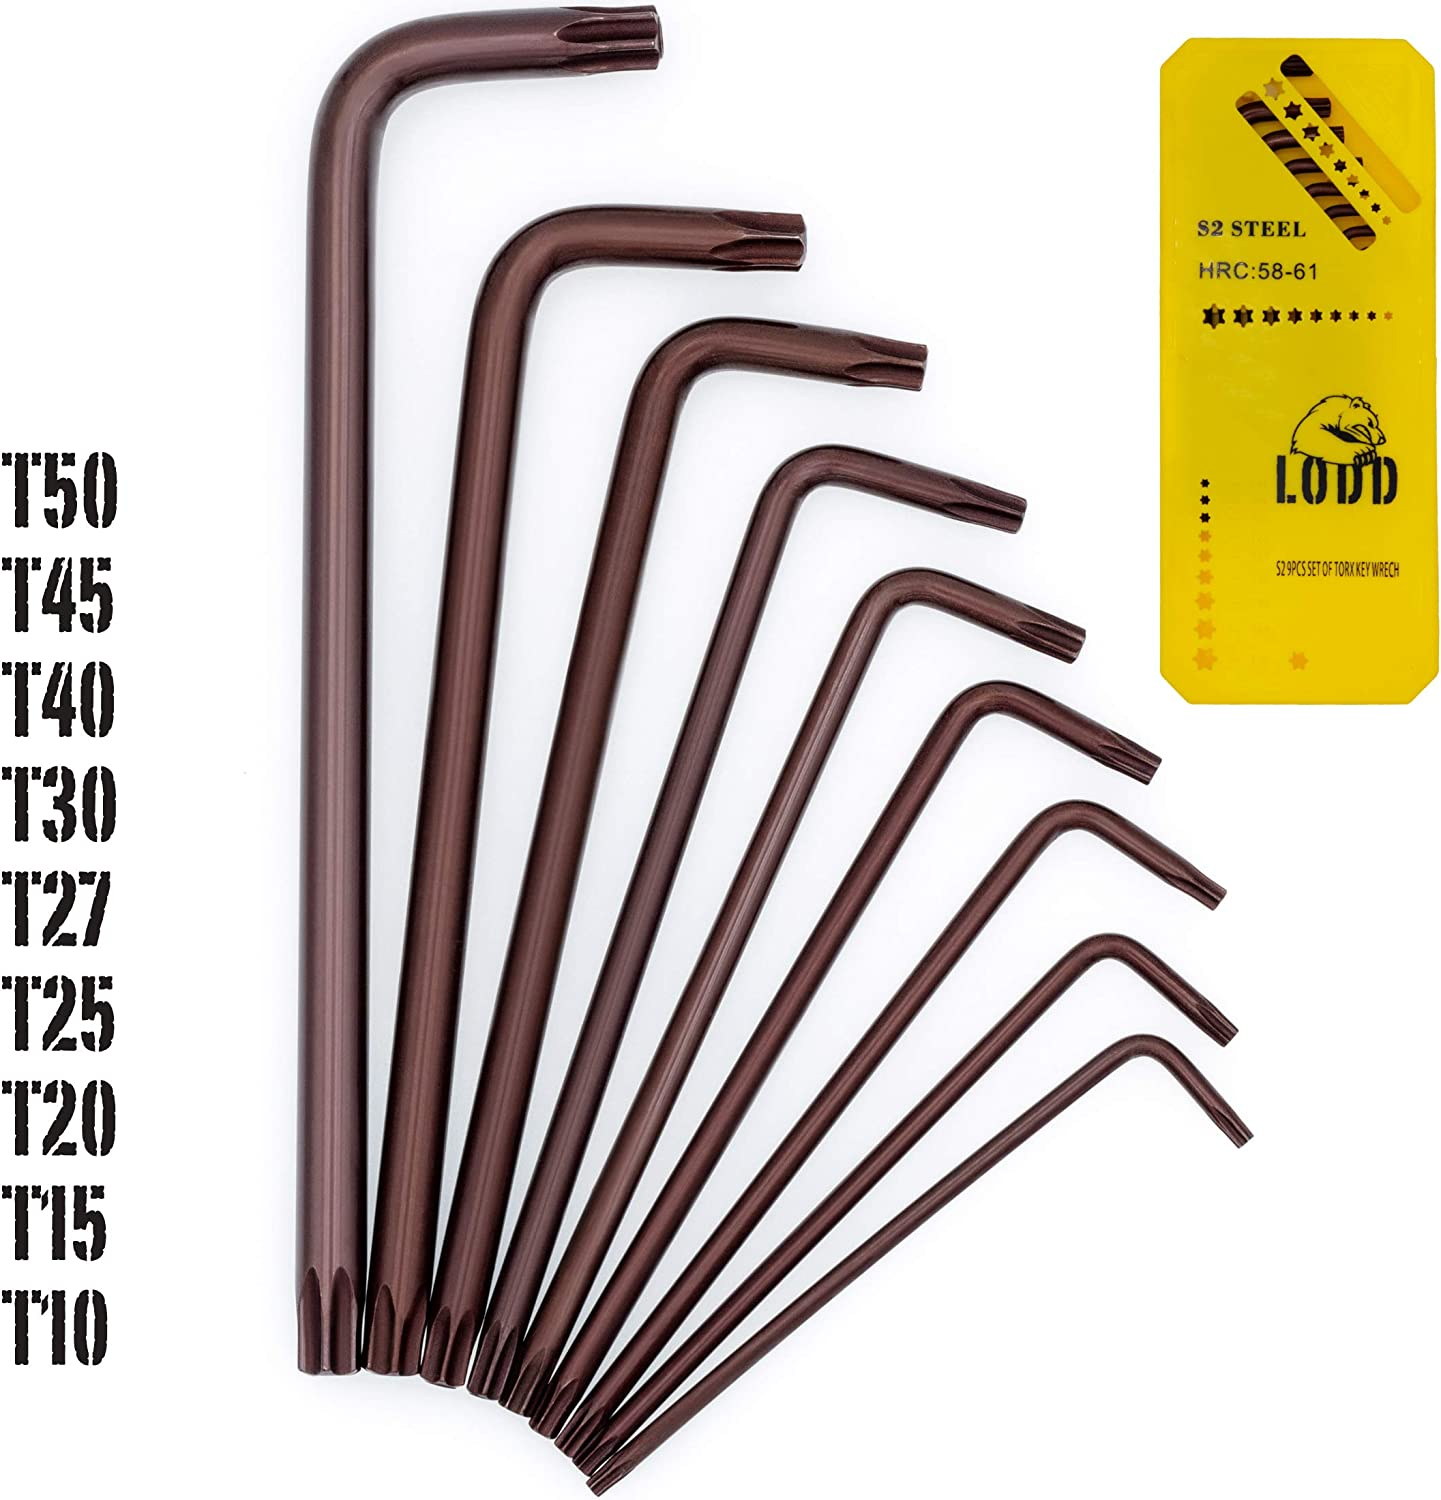 LODD Set of 9 High Tensile Torx Star Keys in S2 Anodised Steel with Pierced Heads Long Arm and Storage Holder Bronze